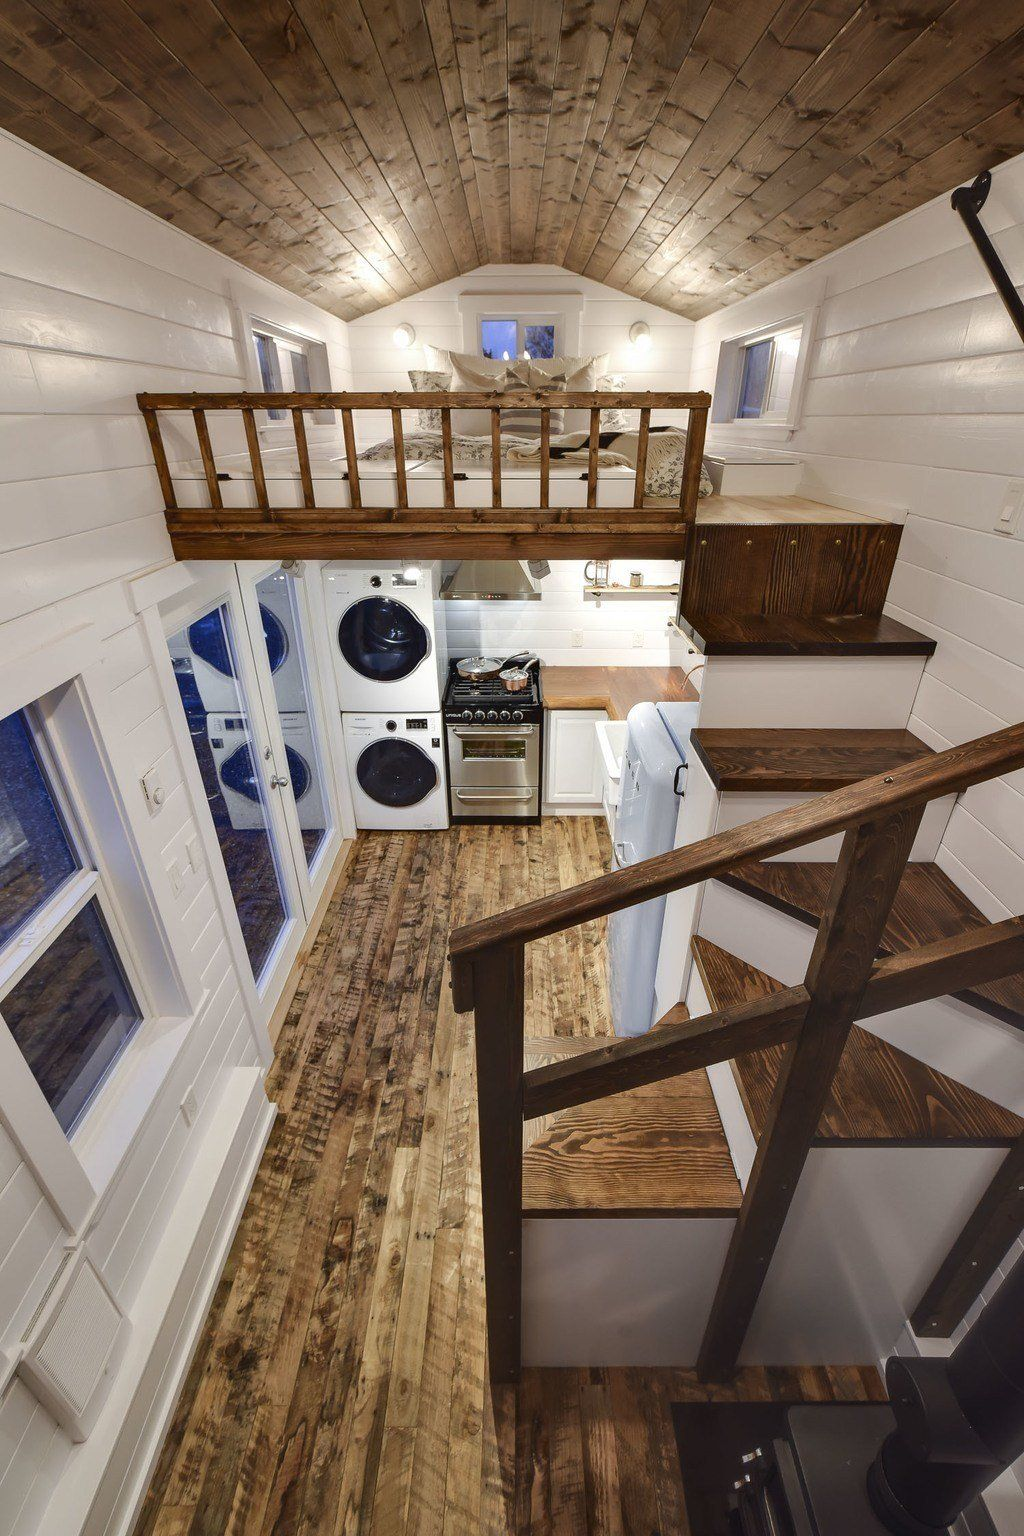 Rustic Loft Tiny house loft, Tiny house bedroom, Tiny